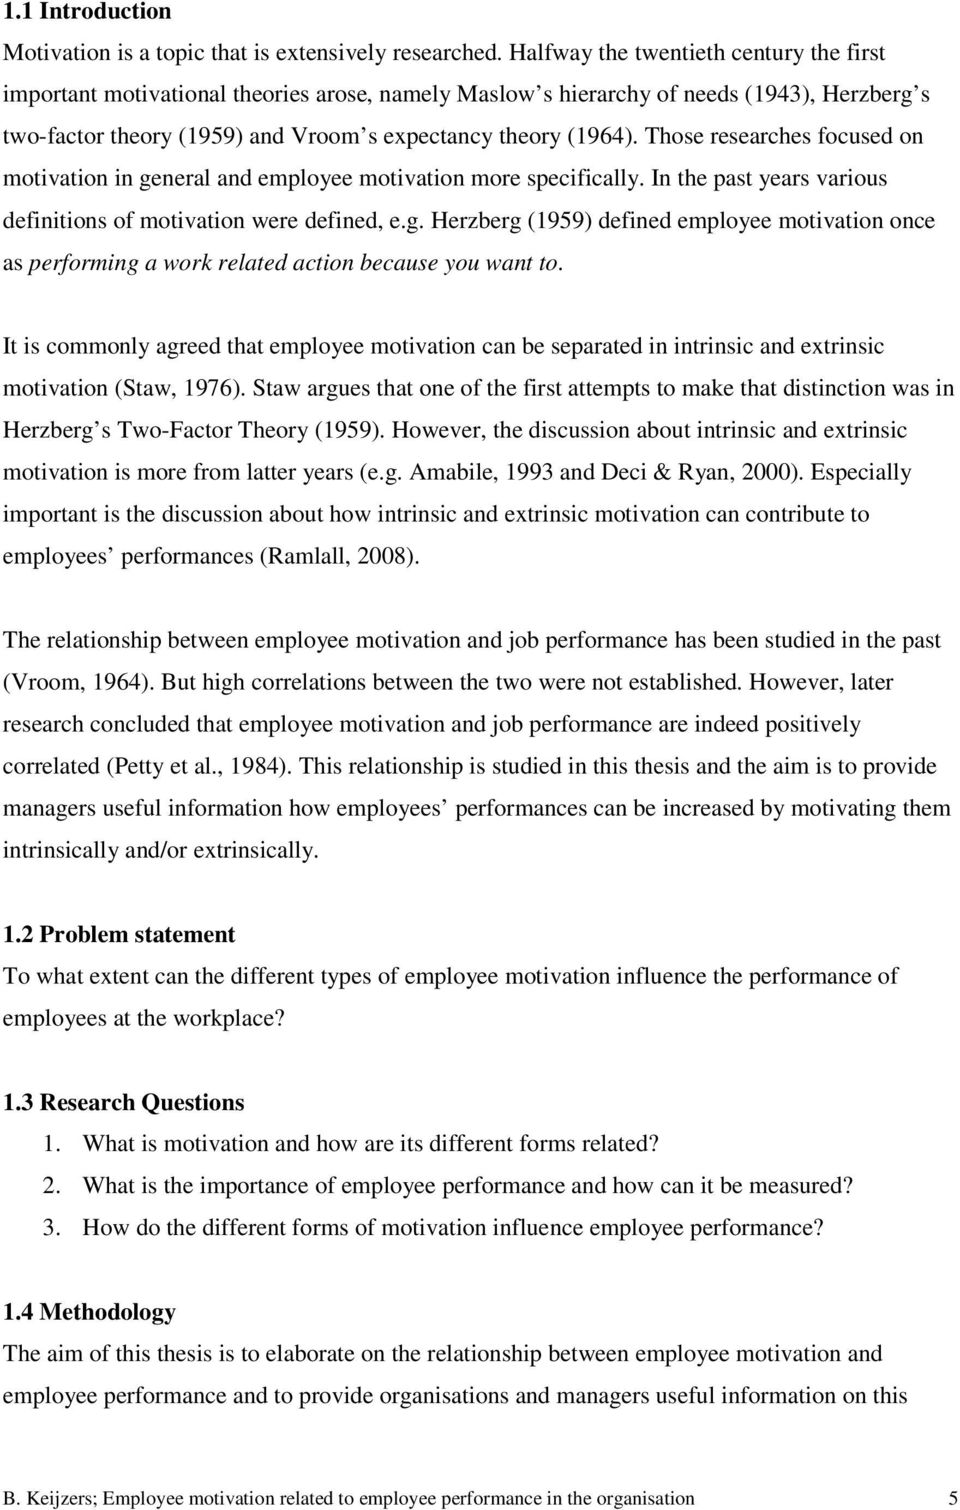 Bachelor Thesis: Employee Motivation and Performance - PDF